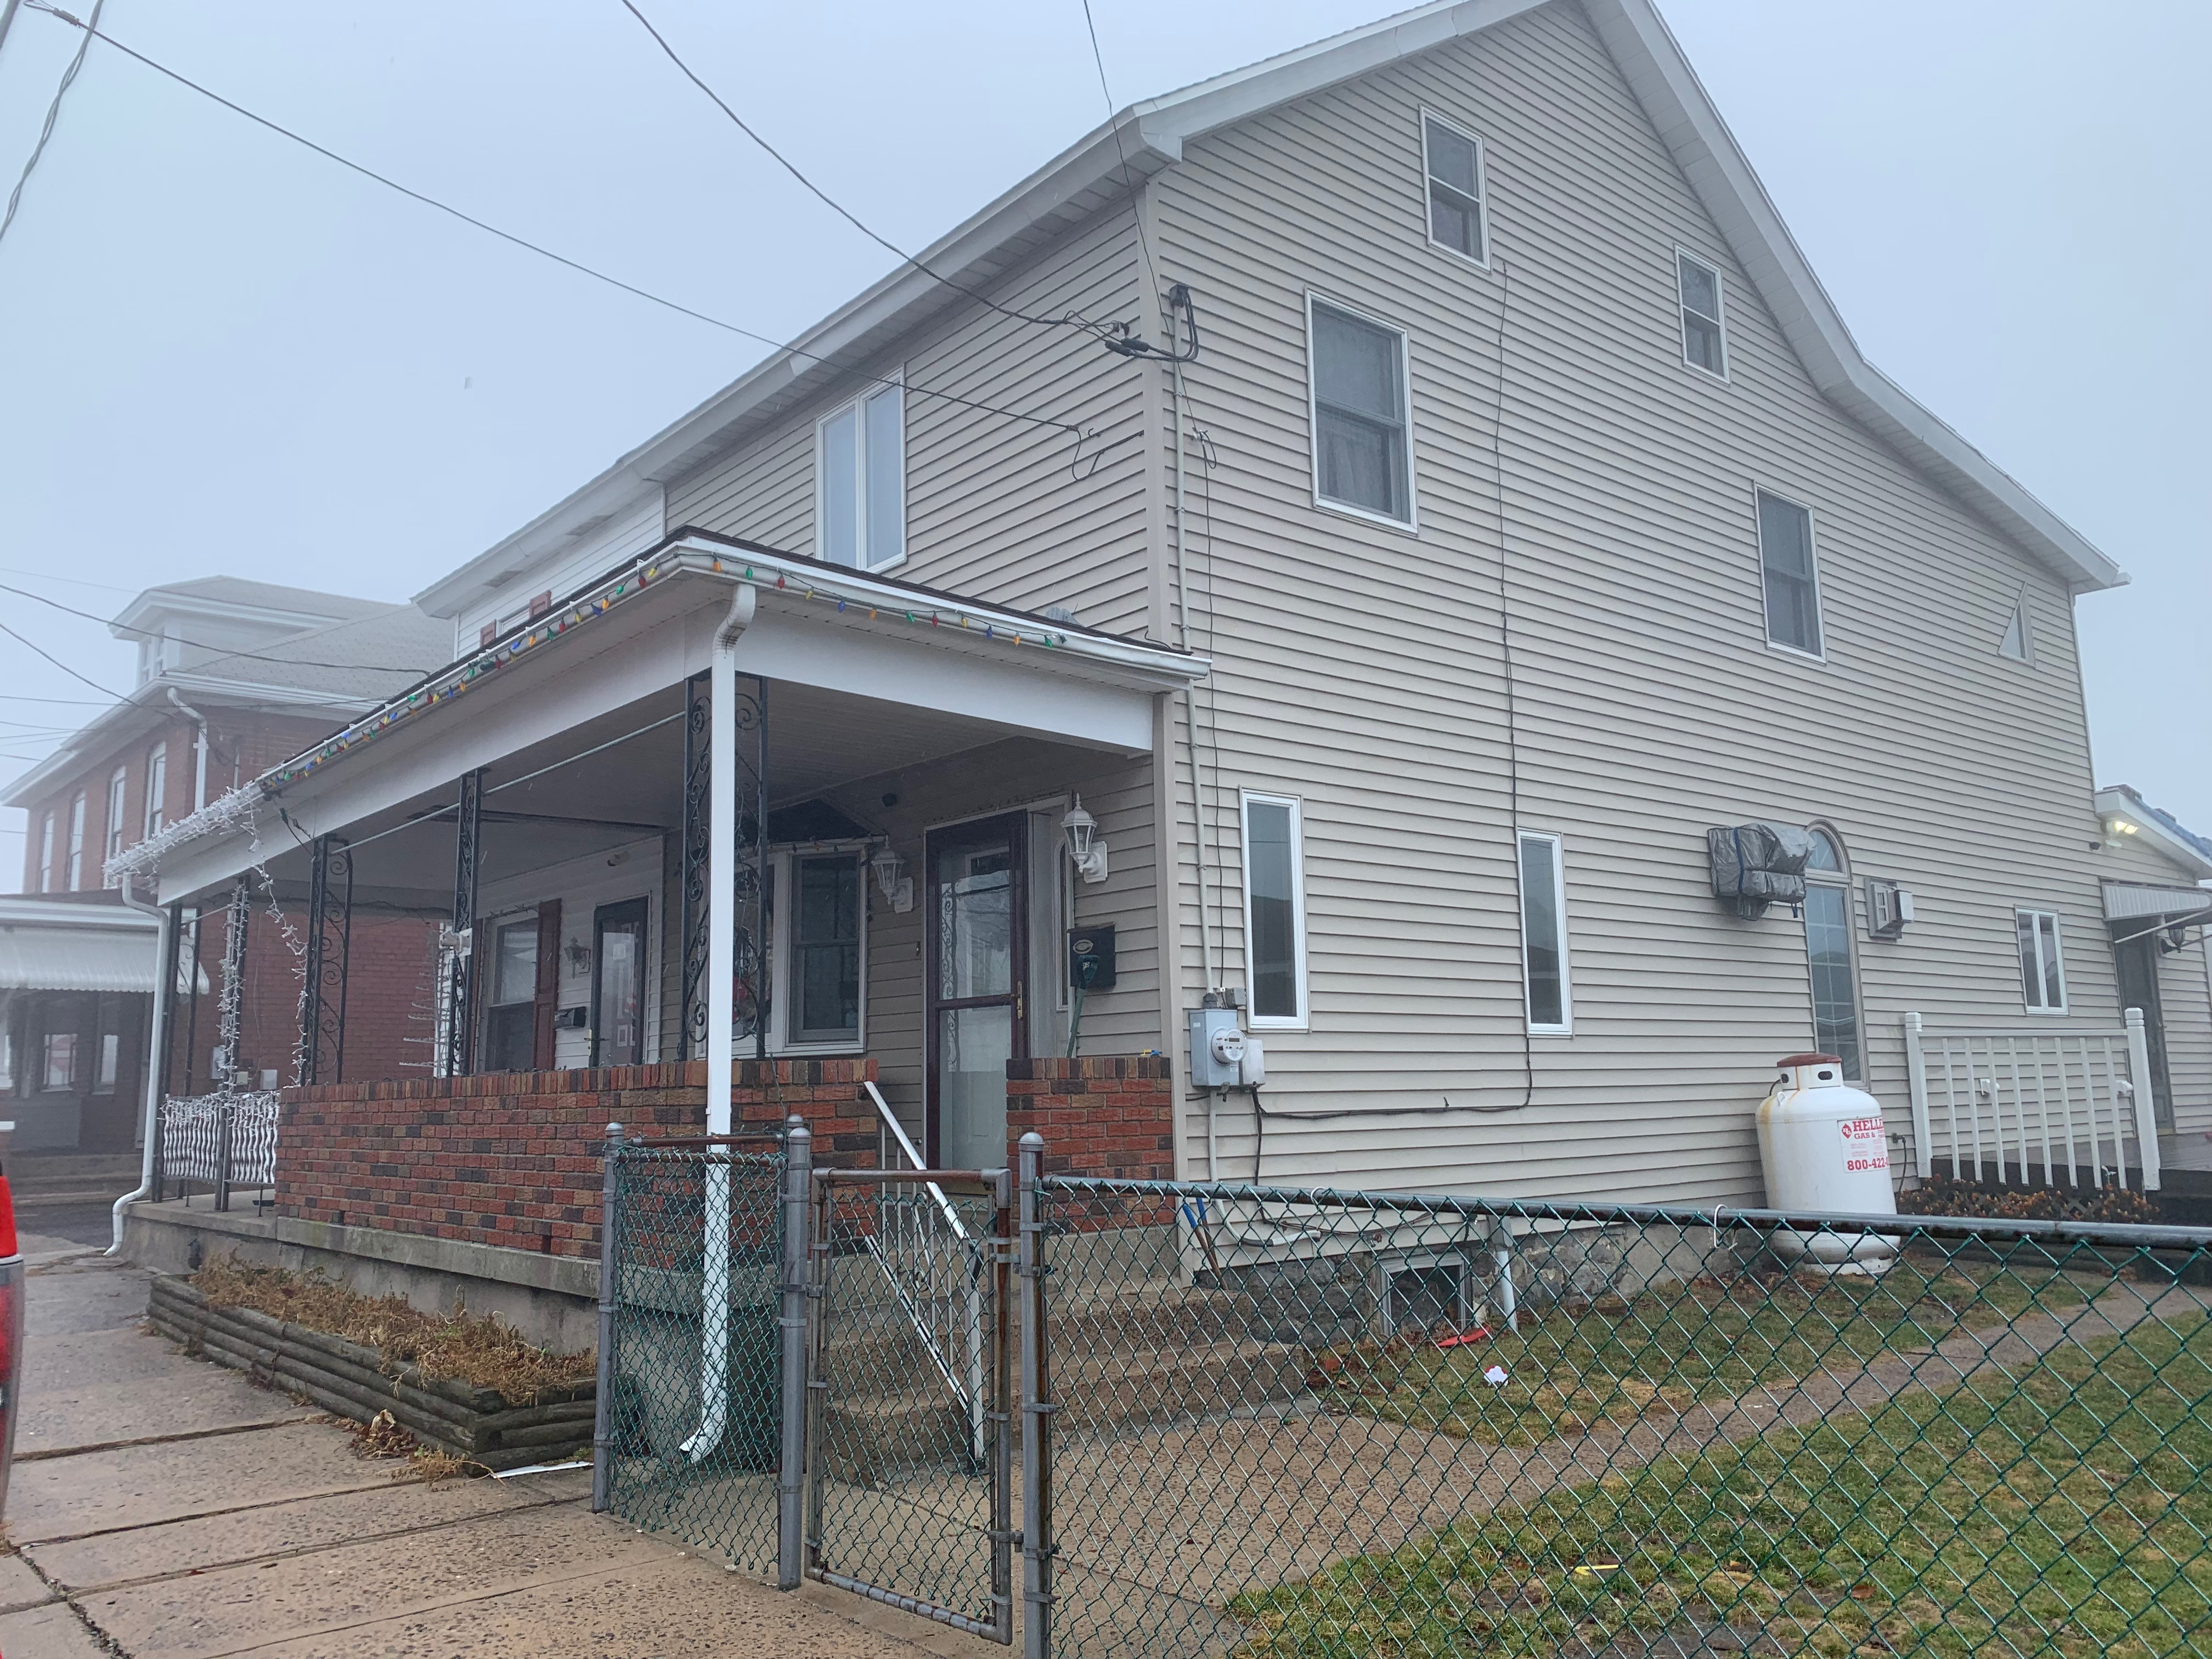 Summit Hill - 3 Bedroom 2 Bath $86,000